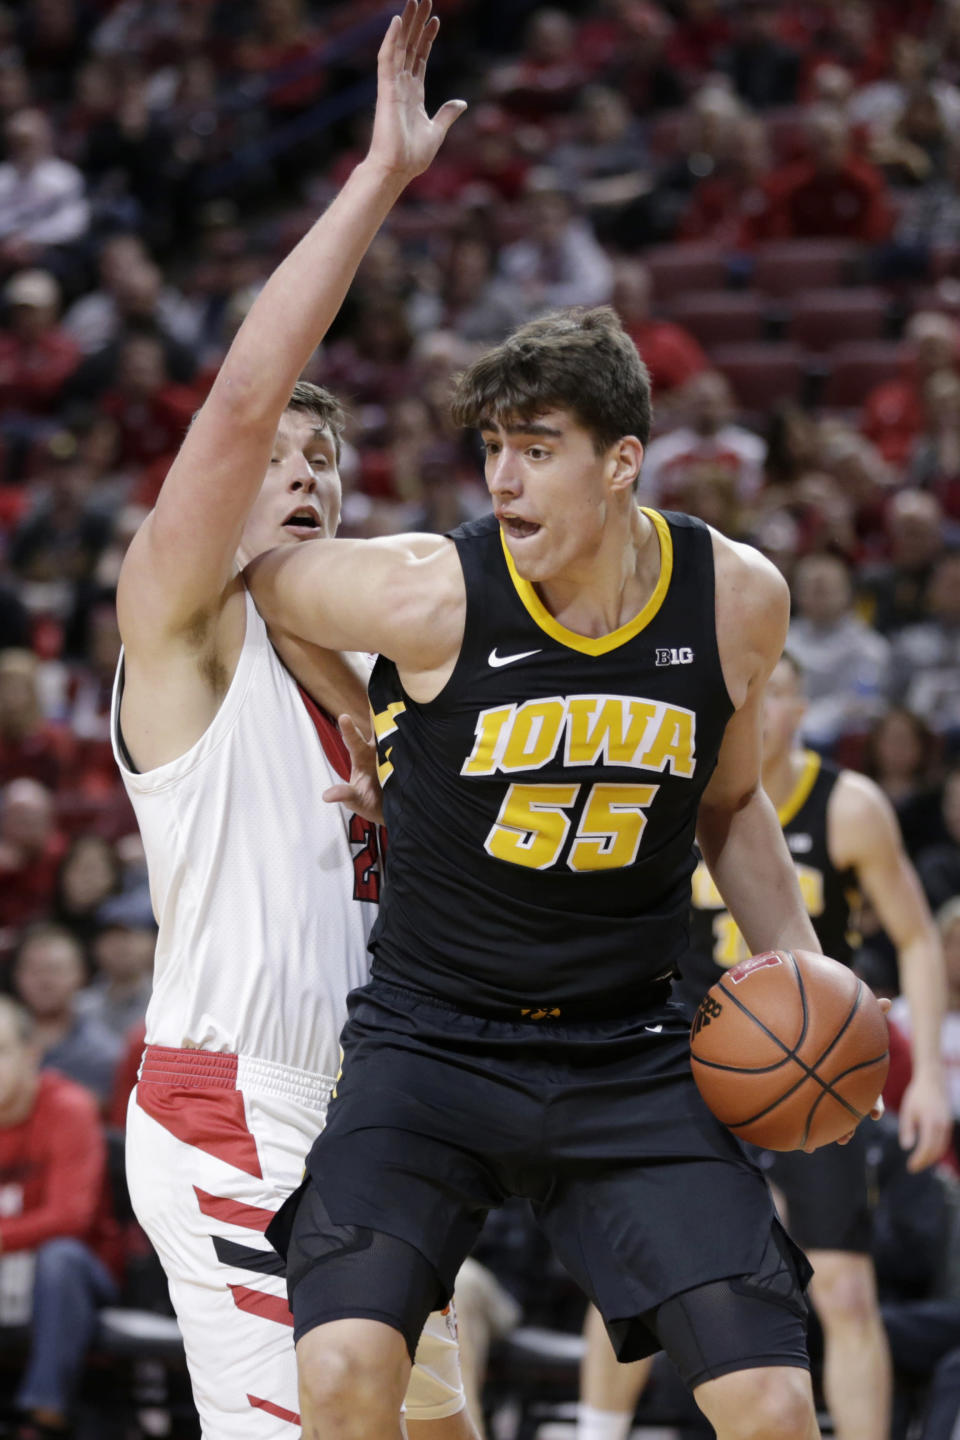 Iowa's Luka Garza (55) is defended by Nebraska's Tanner Borchardt during the first half of an NCAA college basketball game in Lincoln, Neb., Sunday, March 10, 2019. (AP Photo/Nati Harnik)